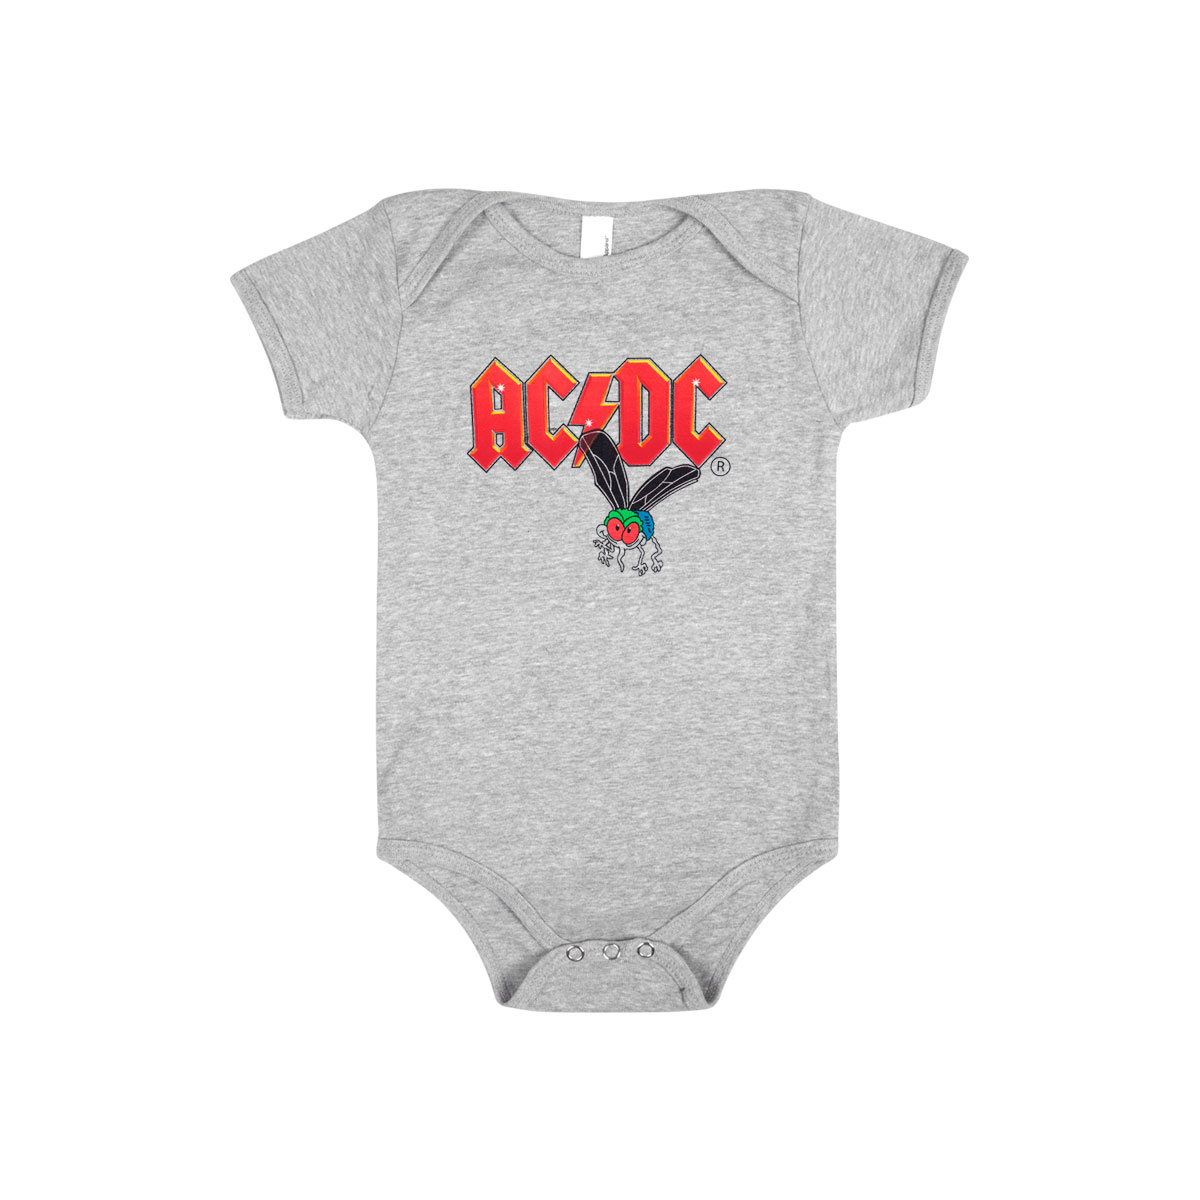 AC/DC Fly on the Wall Grey Baby Onesie